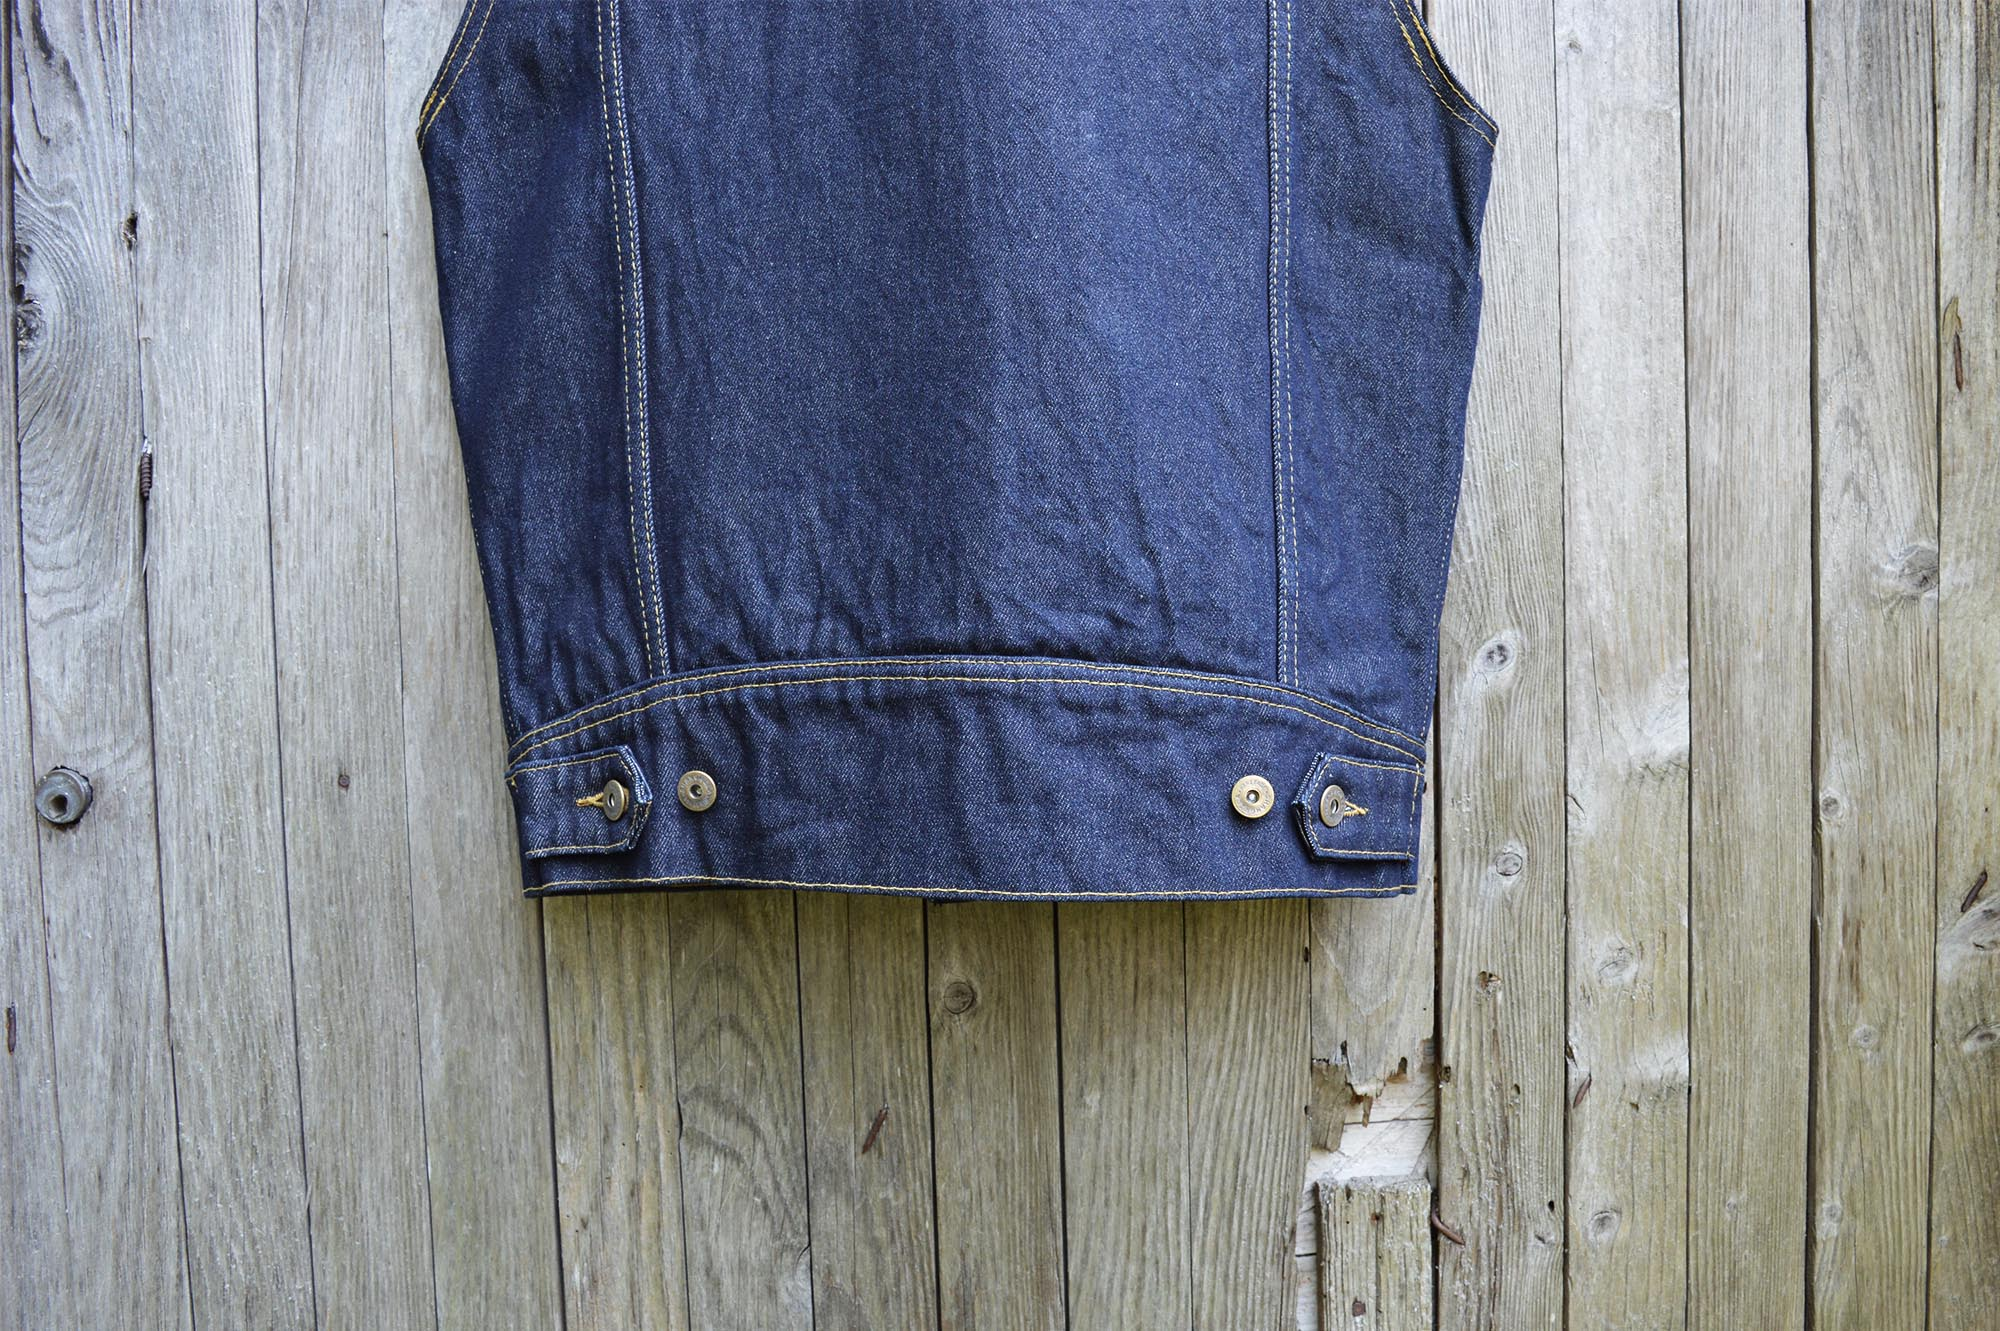 shangri-la-heritage-single-rider-denim-vest-still-life-back-bottom